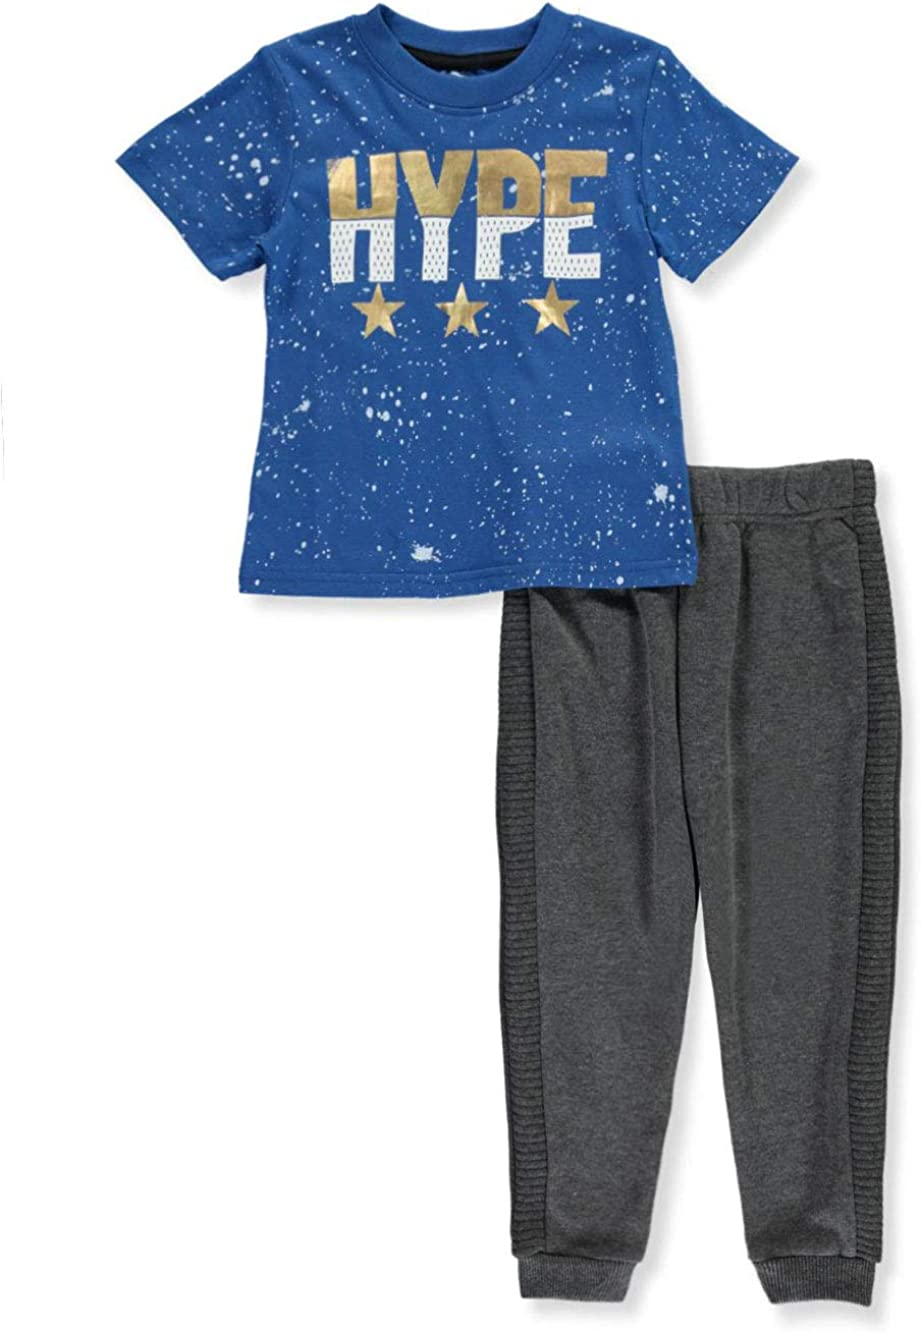 S1ope Boys Paint-Splattered Hype 2-Piece Pants Set Outfit